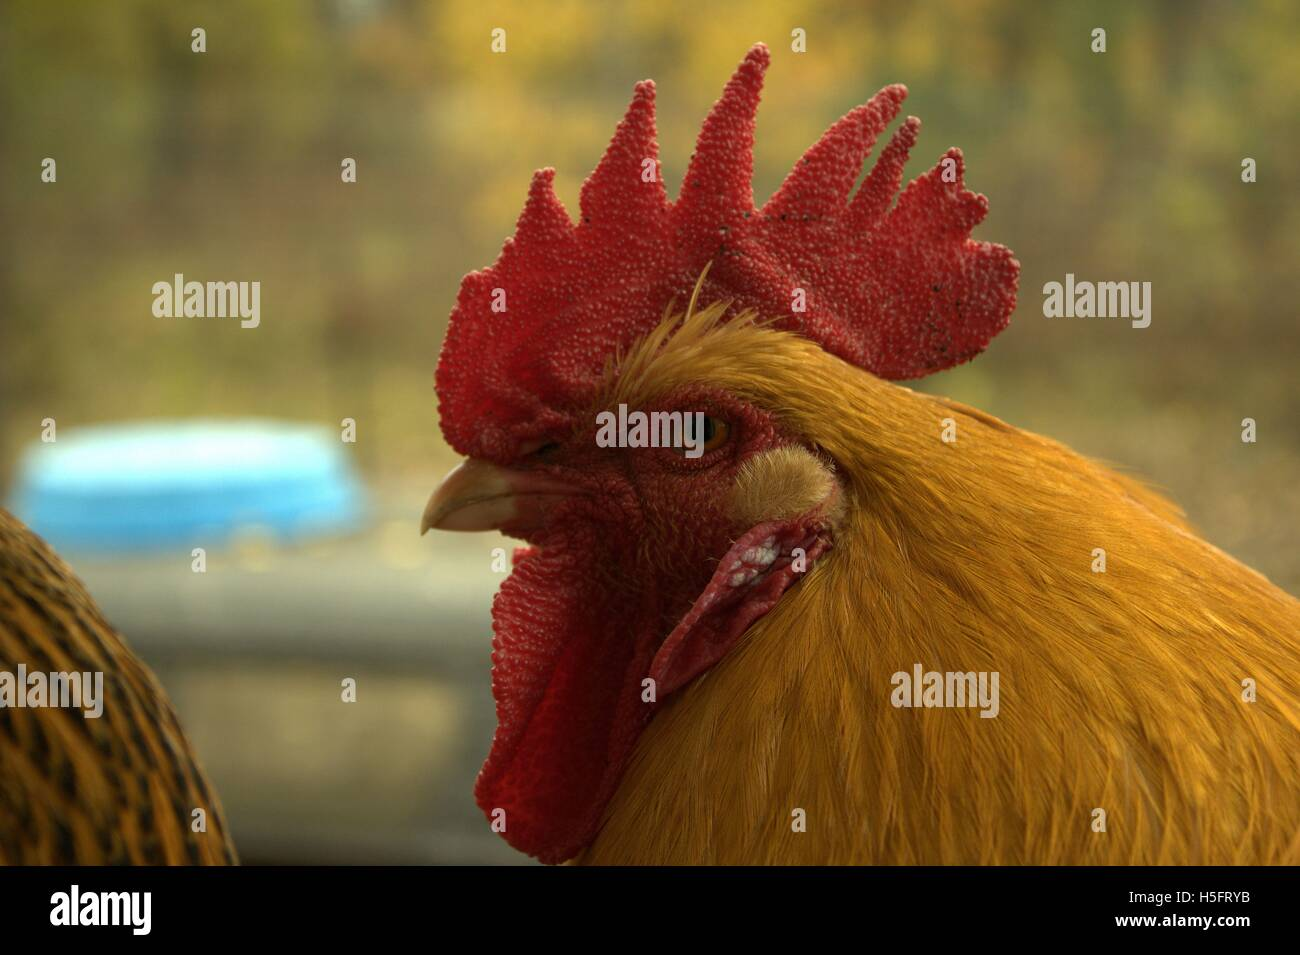 Buff Orpington Rooster Close Up Immagini Stock